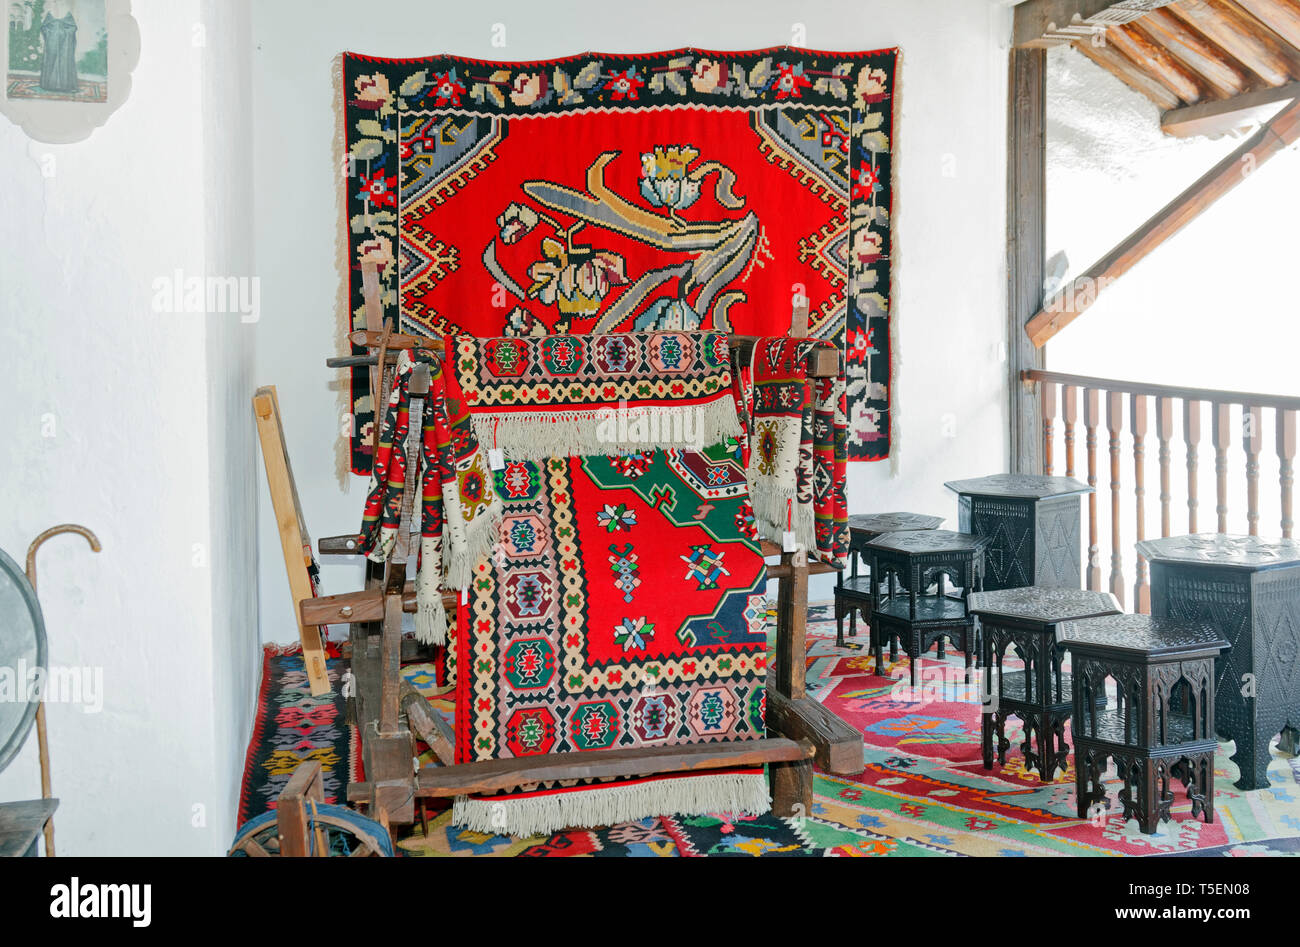 outdoor balcony room; Muslibegovic House; Ottoman period architecture; old; bright colored carpets, National Monument; Mostar; Bosnia Herzegovina; Eur - Stock Image